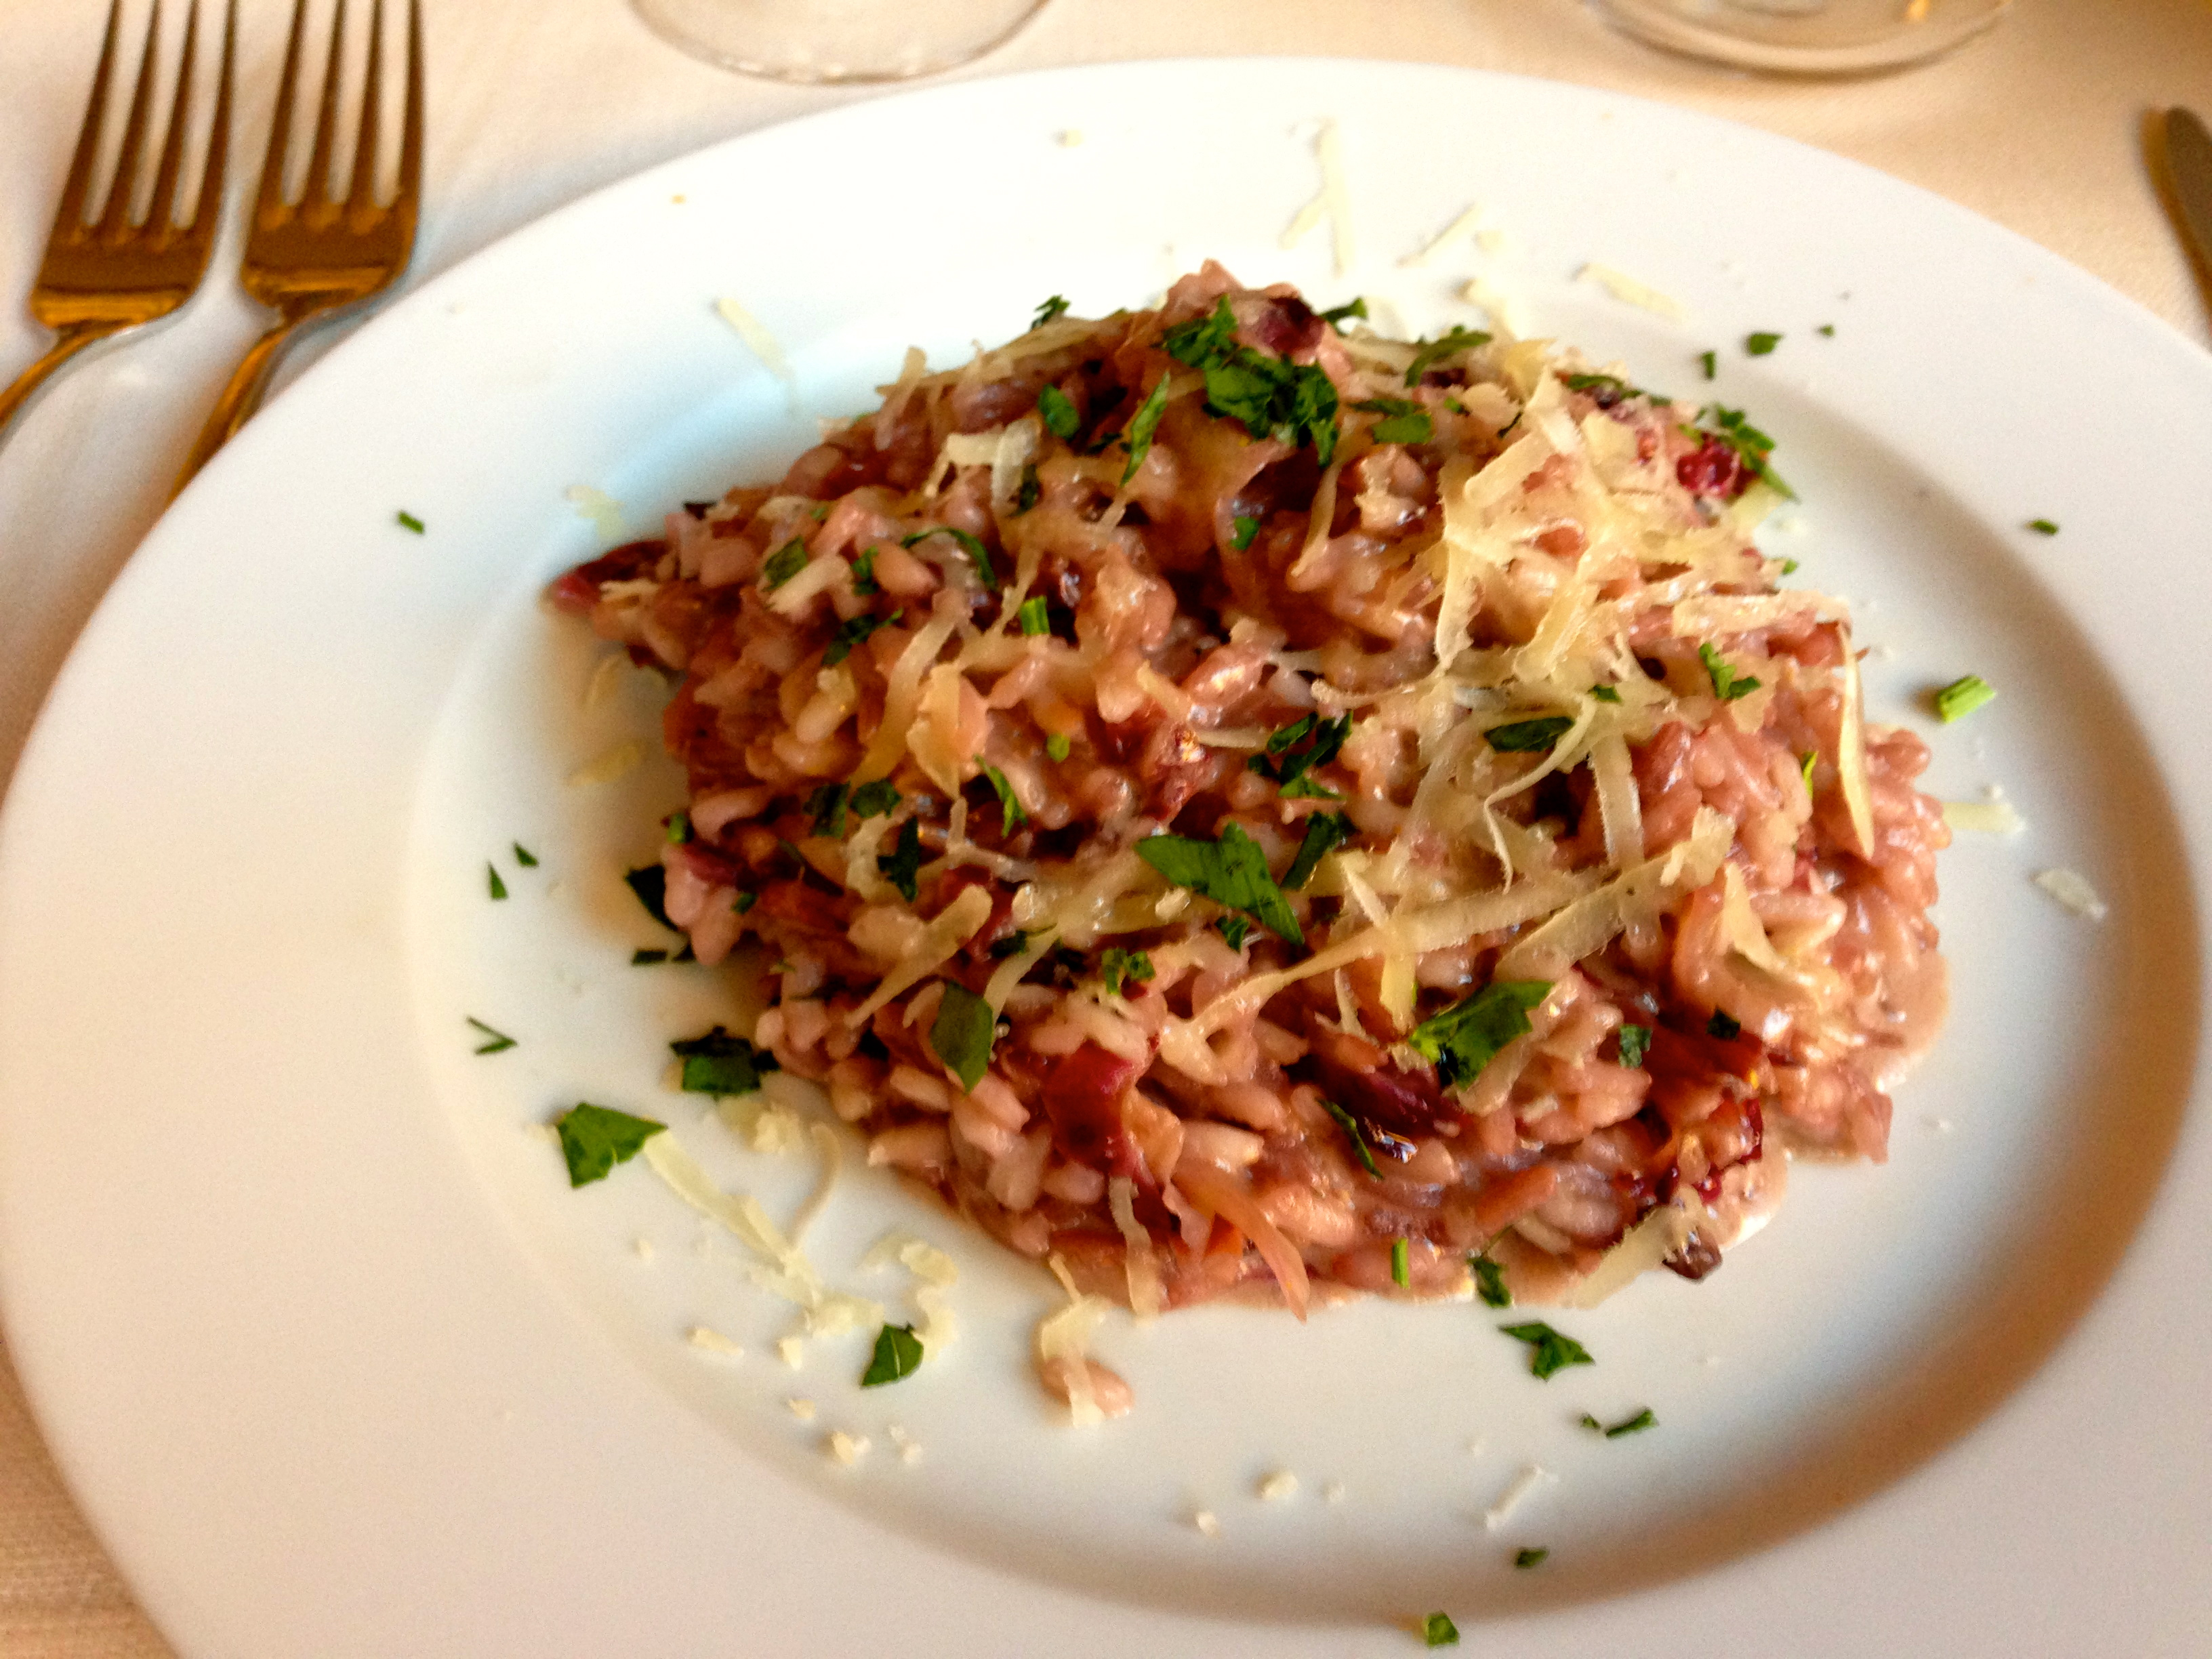 Caffe Pitti Florence Restaurant specializing in truffle dishes